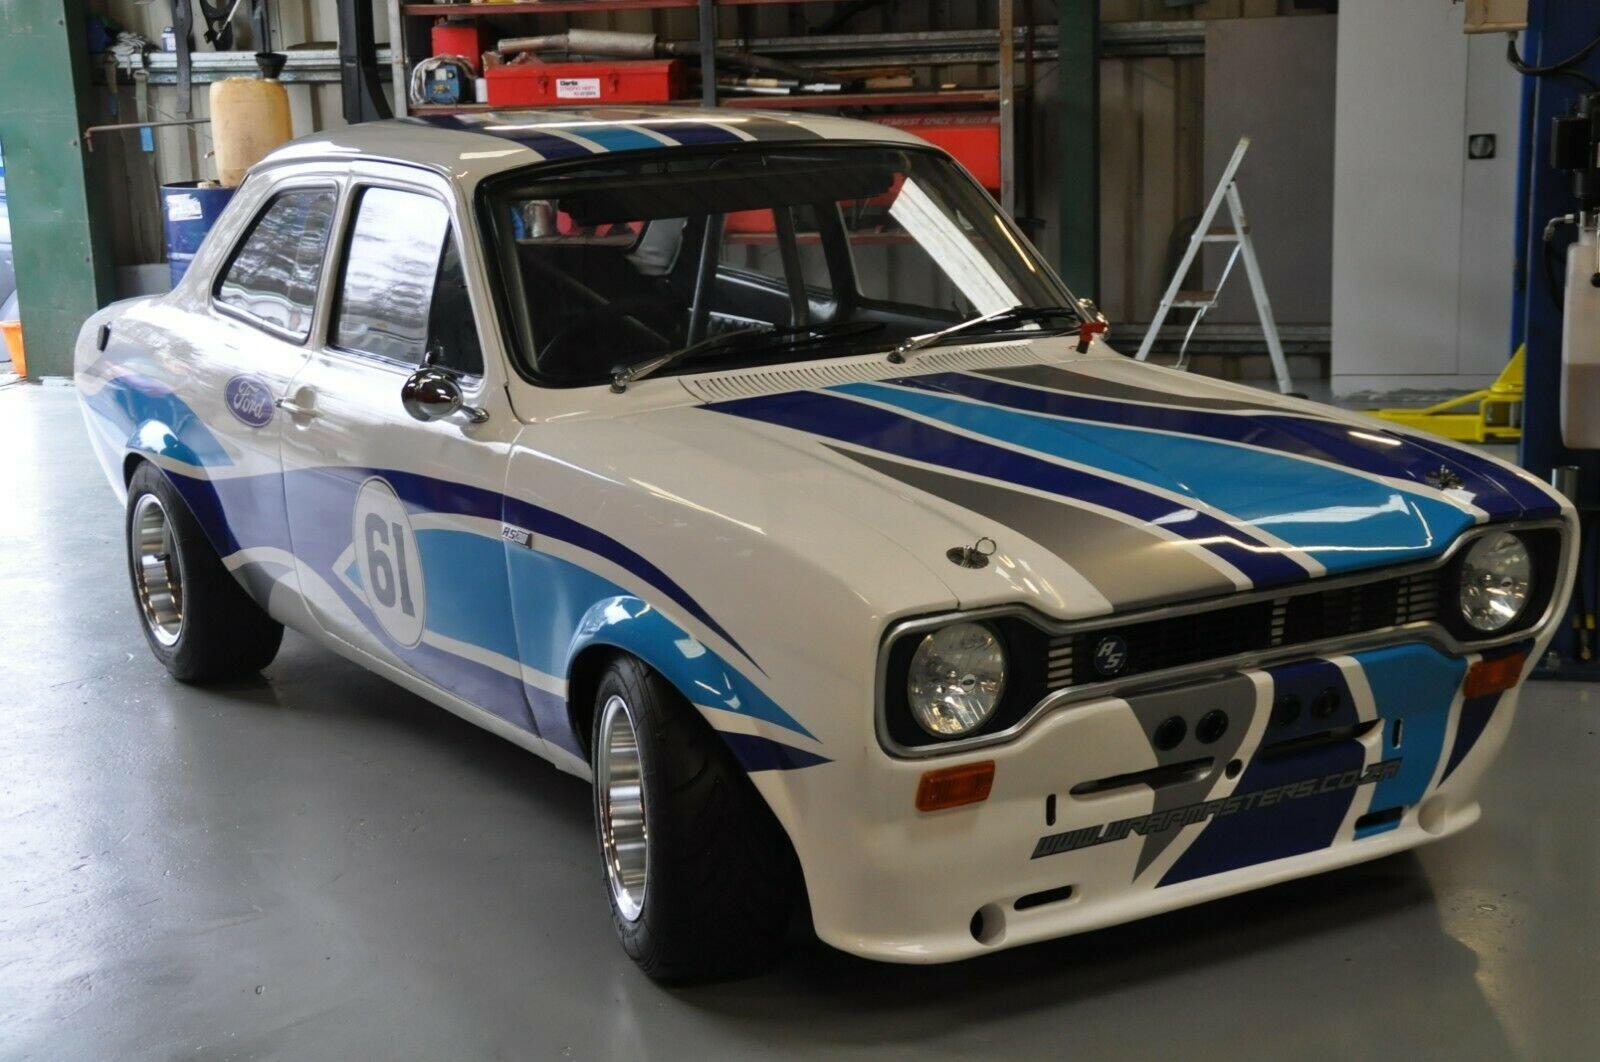 MK1 FORD ESCORT RACE CAR 2.0 PINTO 5 SPEED TYPE 9 GEARBOX MO For Sale (picture 2 of 6)